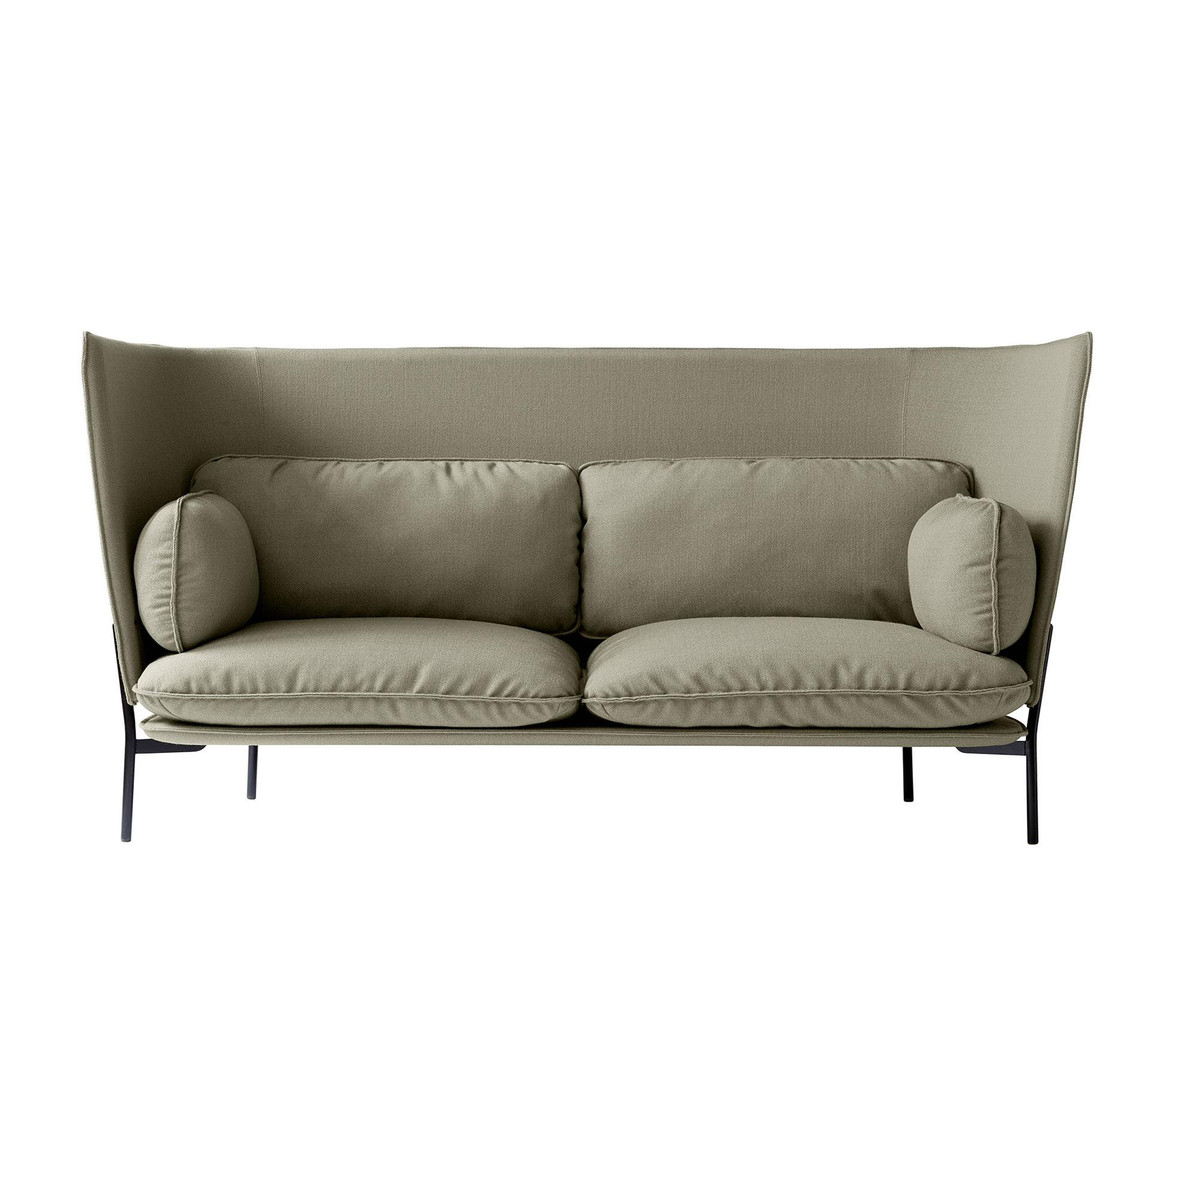 Cloud High Back LN7 Sofa With High Back